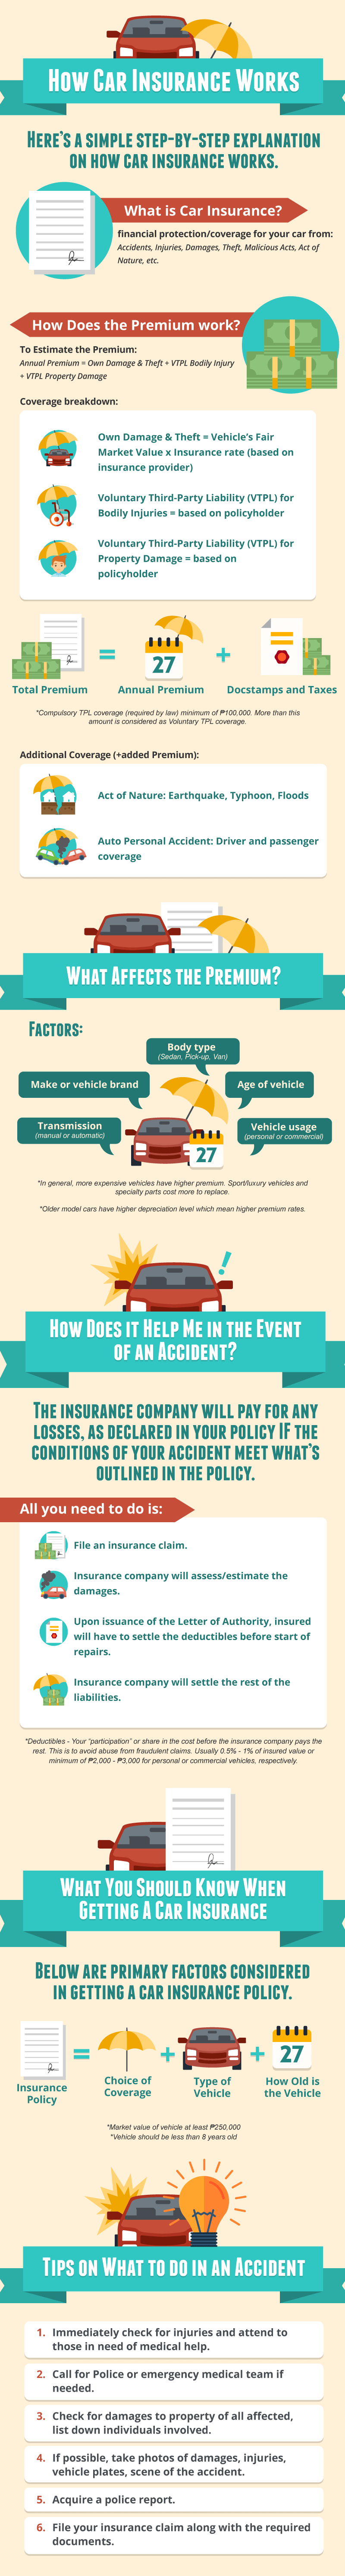 Infographic on How Car Insurance Works image